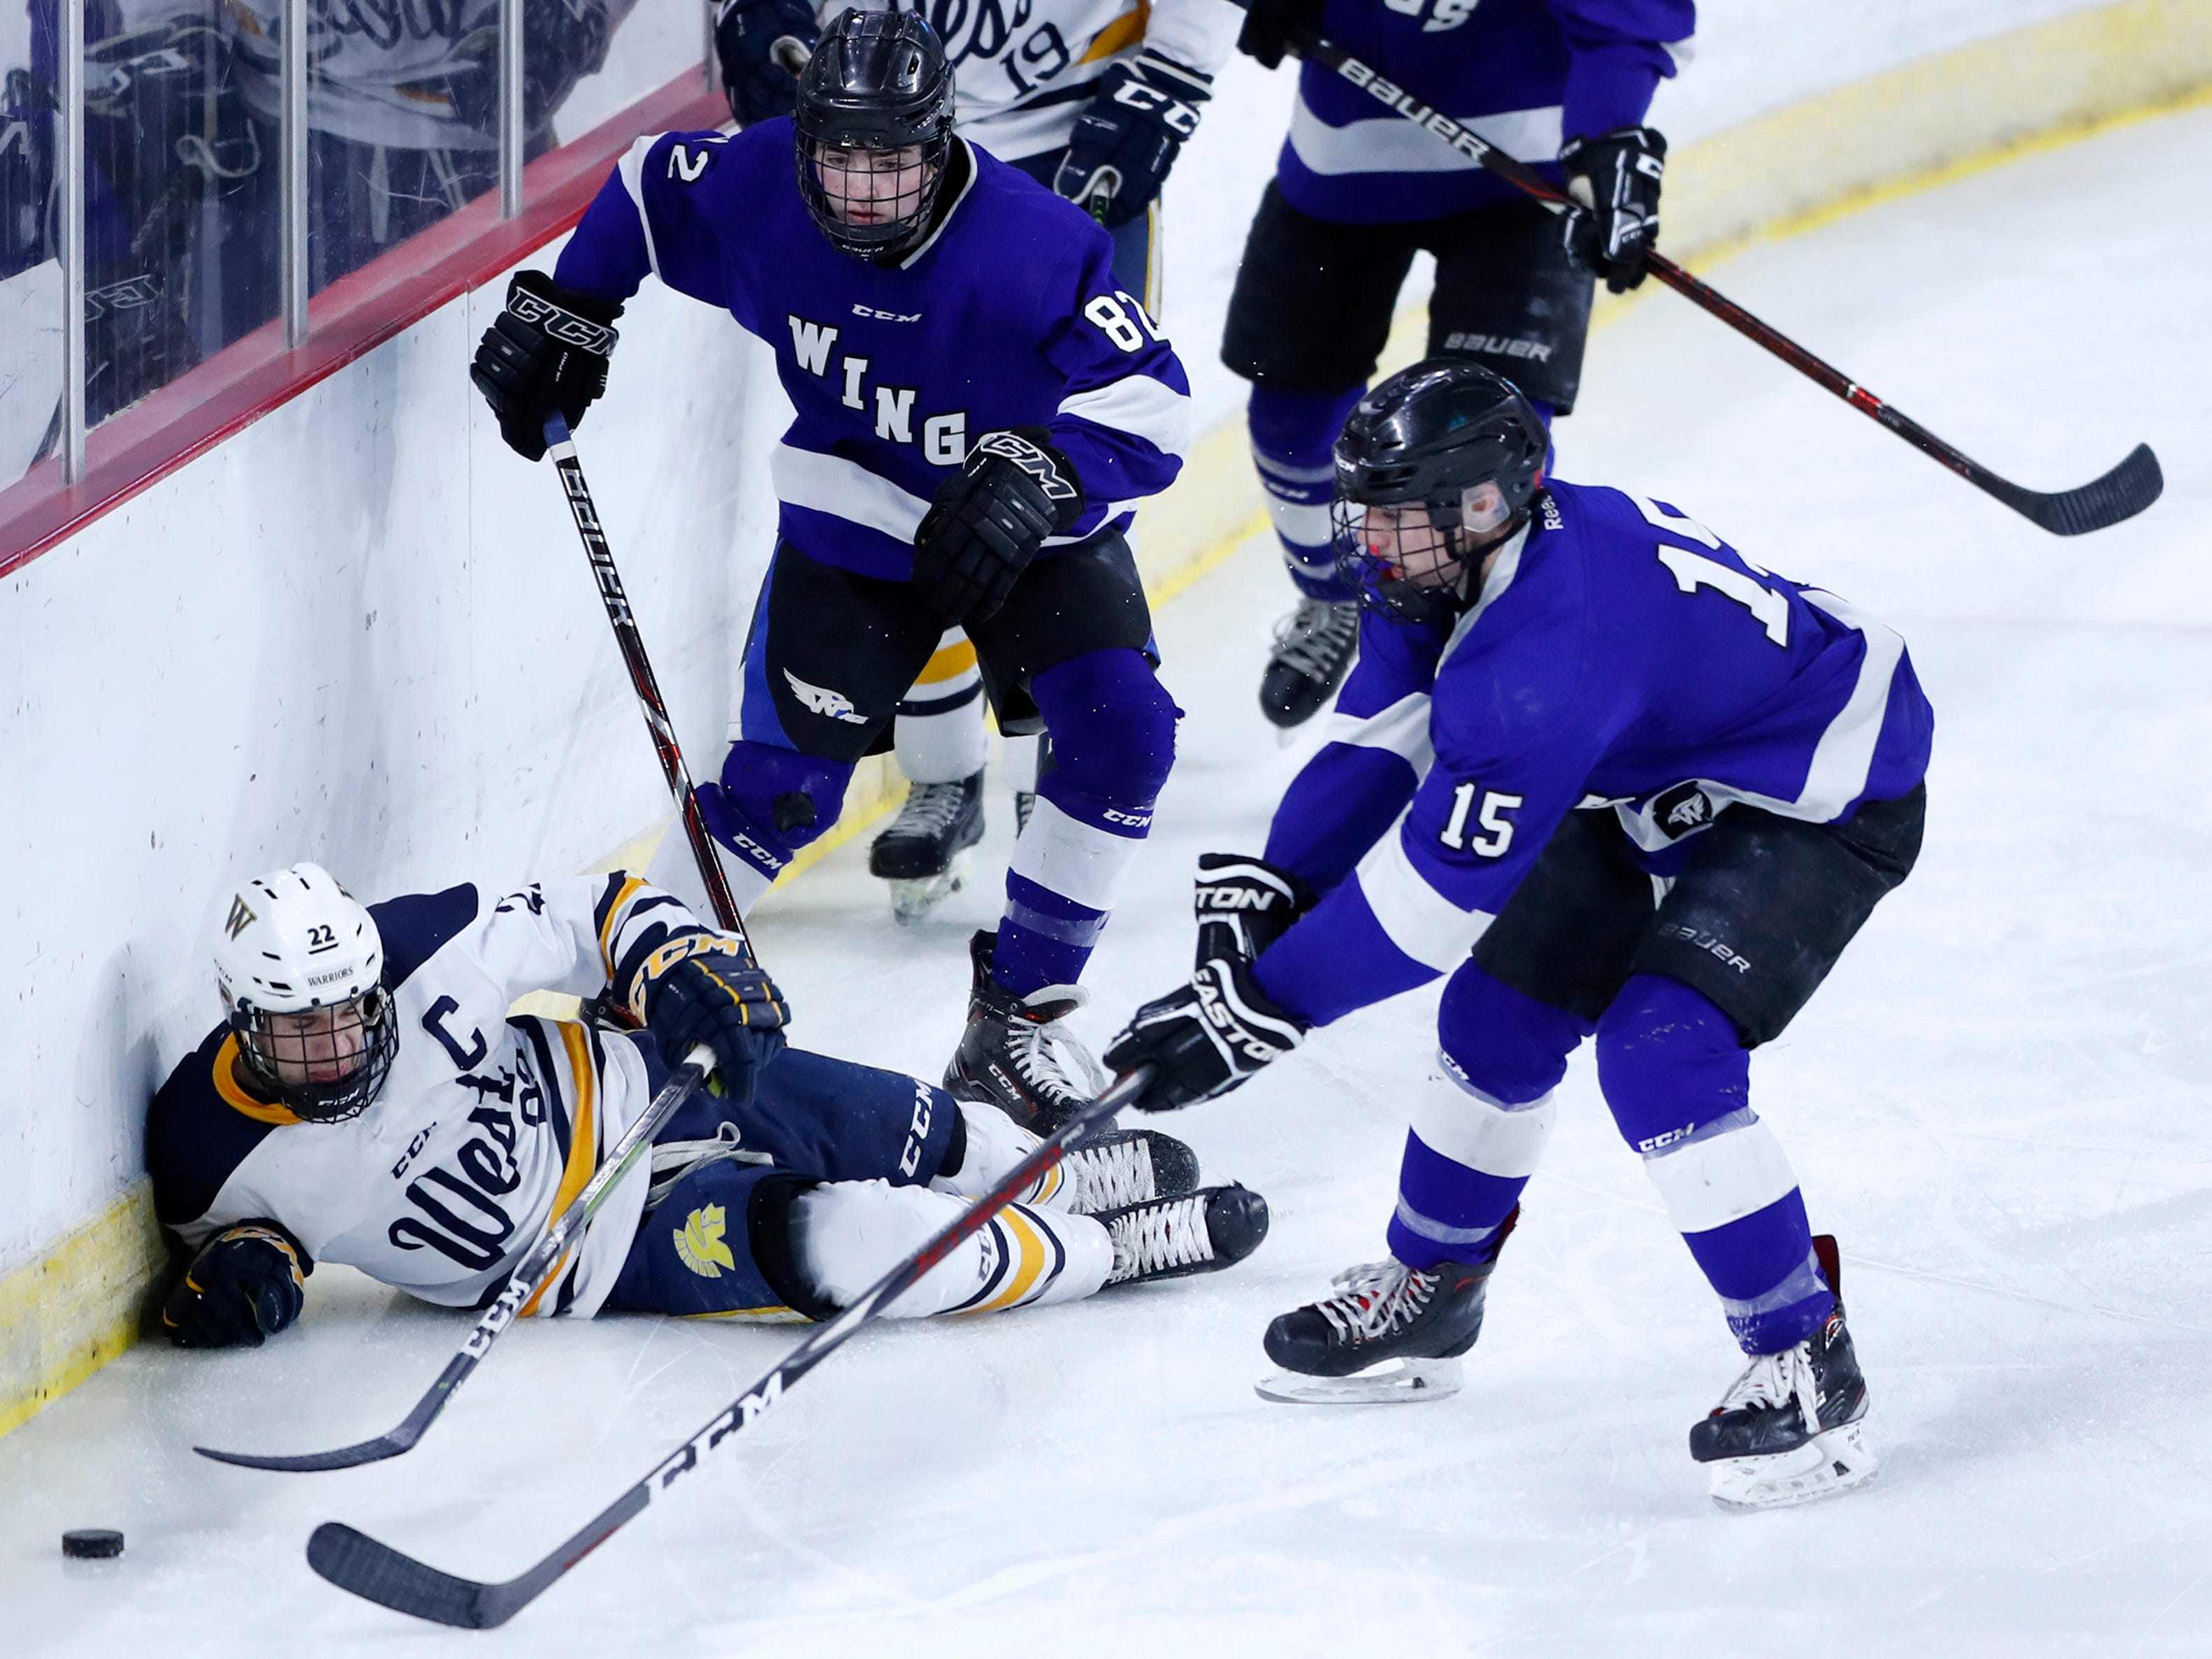 Waukesha North Co-op's Tyler Dale and Garrett Wilderman close in on Wausau West's Sam Techel after he fell to the ice during the WIAA State Hockey Tournament quarterfinals Thursday, Feb. 28, 2019, at Veterans Memorial Coliseum in Madison, Wis.